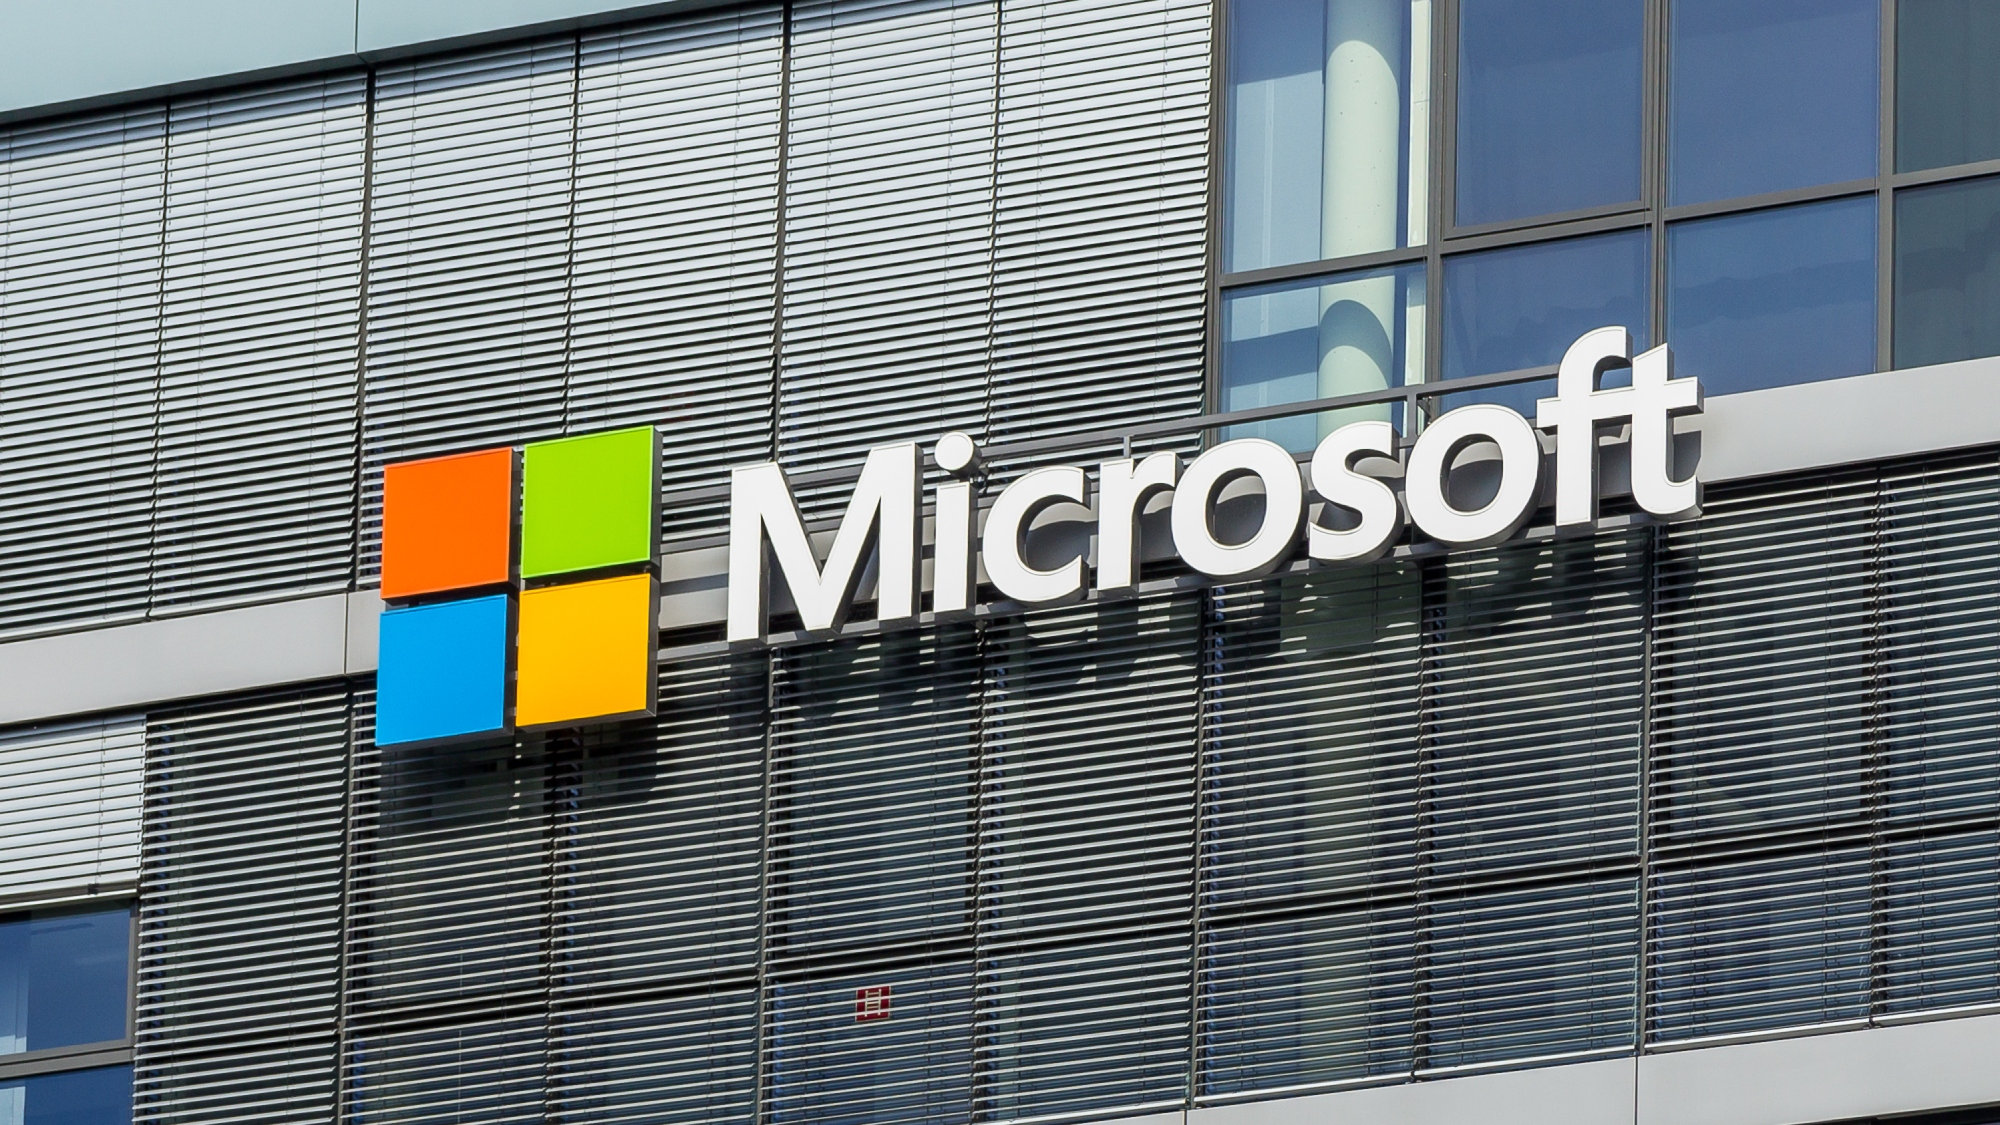 Microsoft expands security offerings to election officials